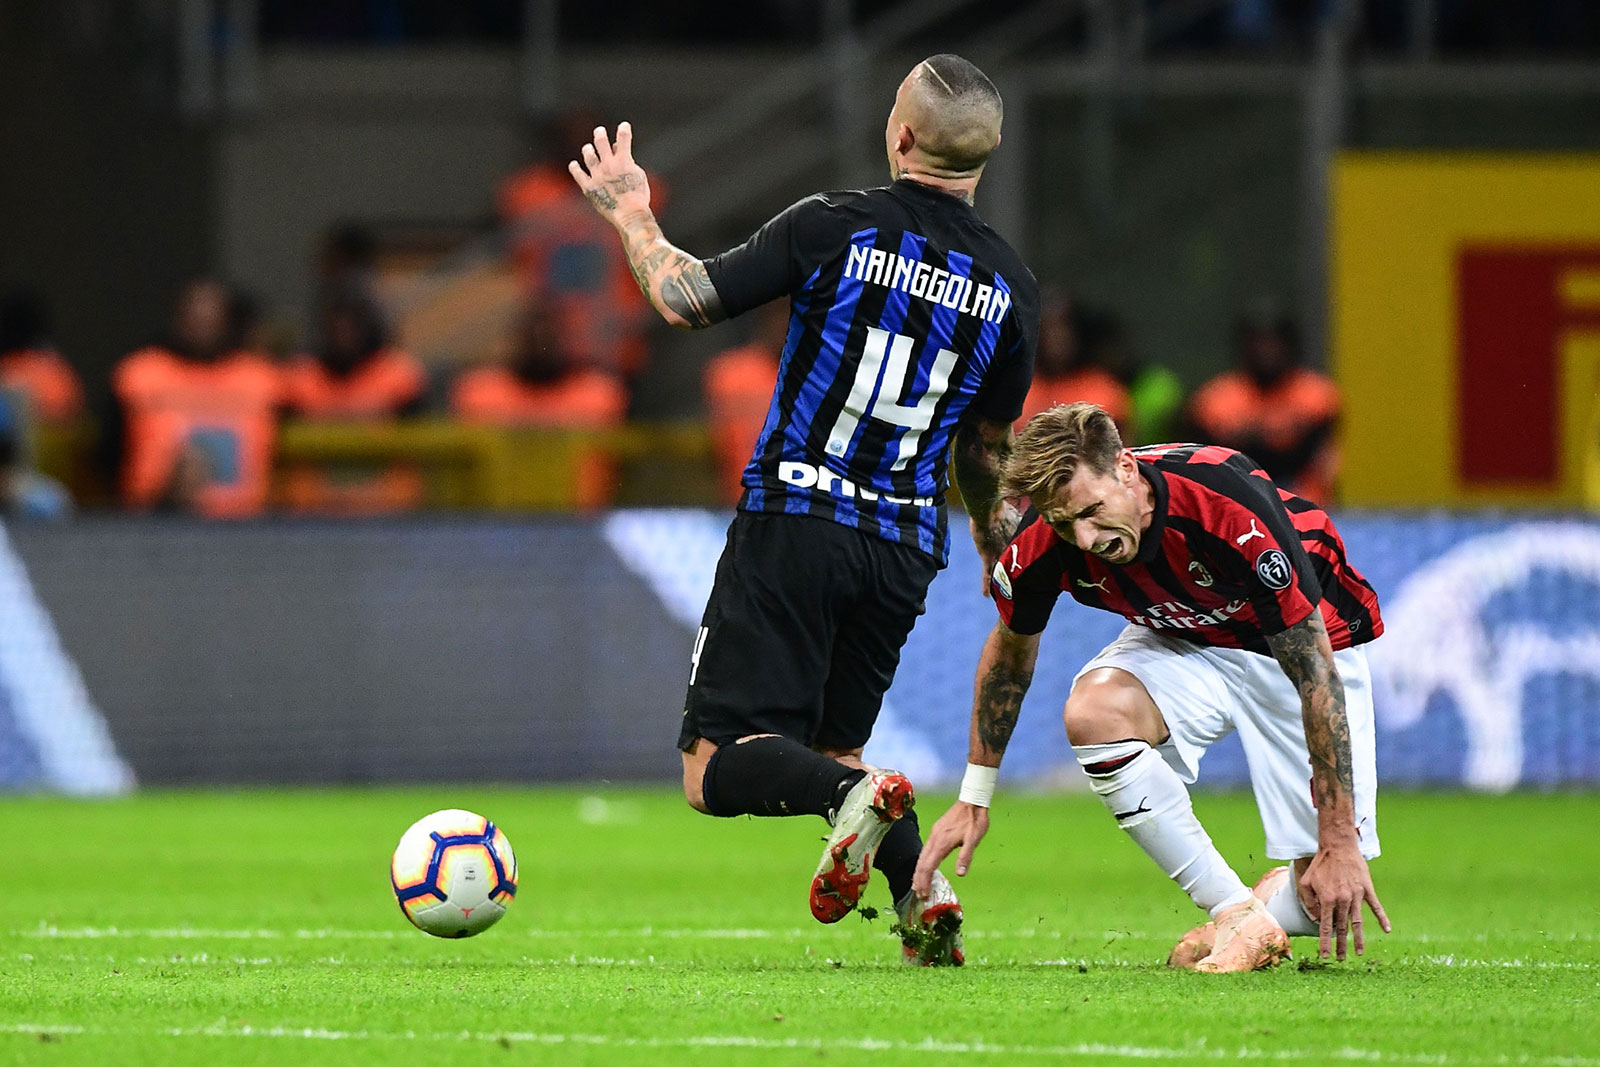 Lucas Biglia and Radja Nainggolan during Inter-Milan at Stadio San Siro on October 21, 2018. (MIGUEL MEDINA/AFP/Getty Images)